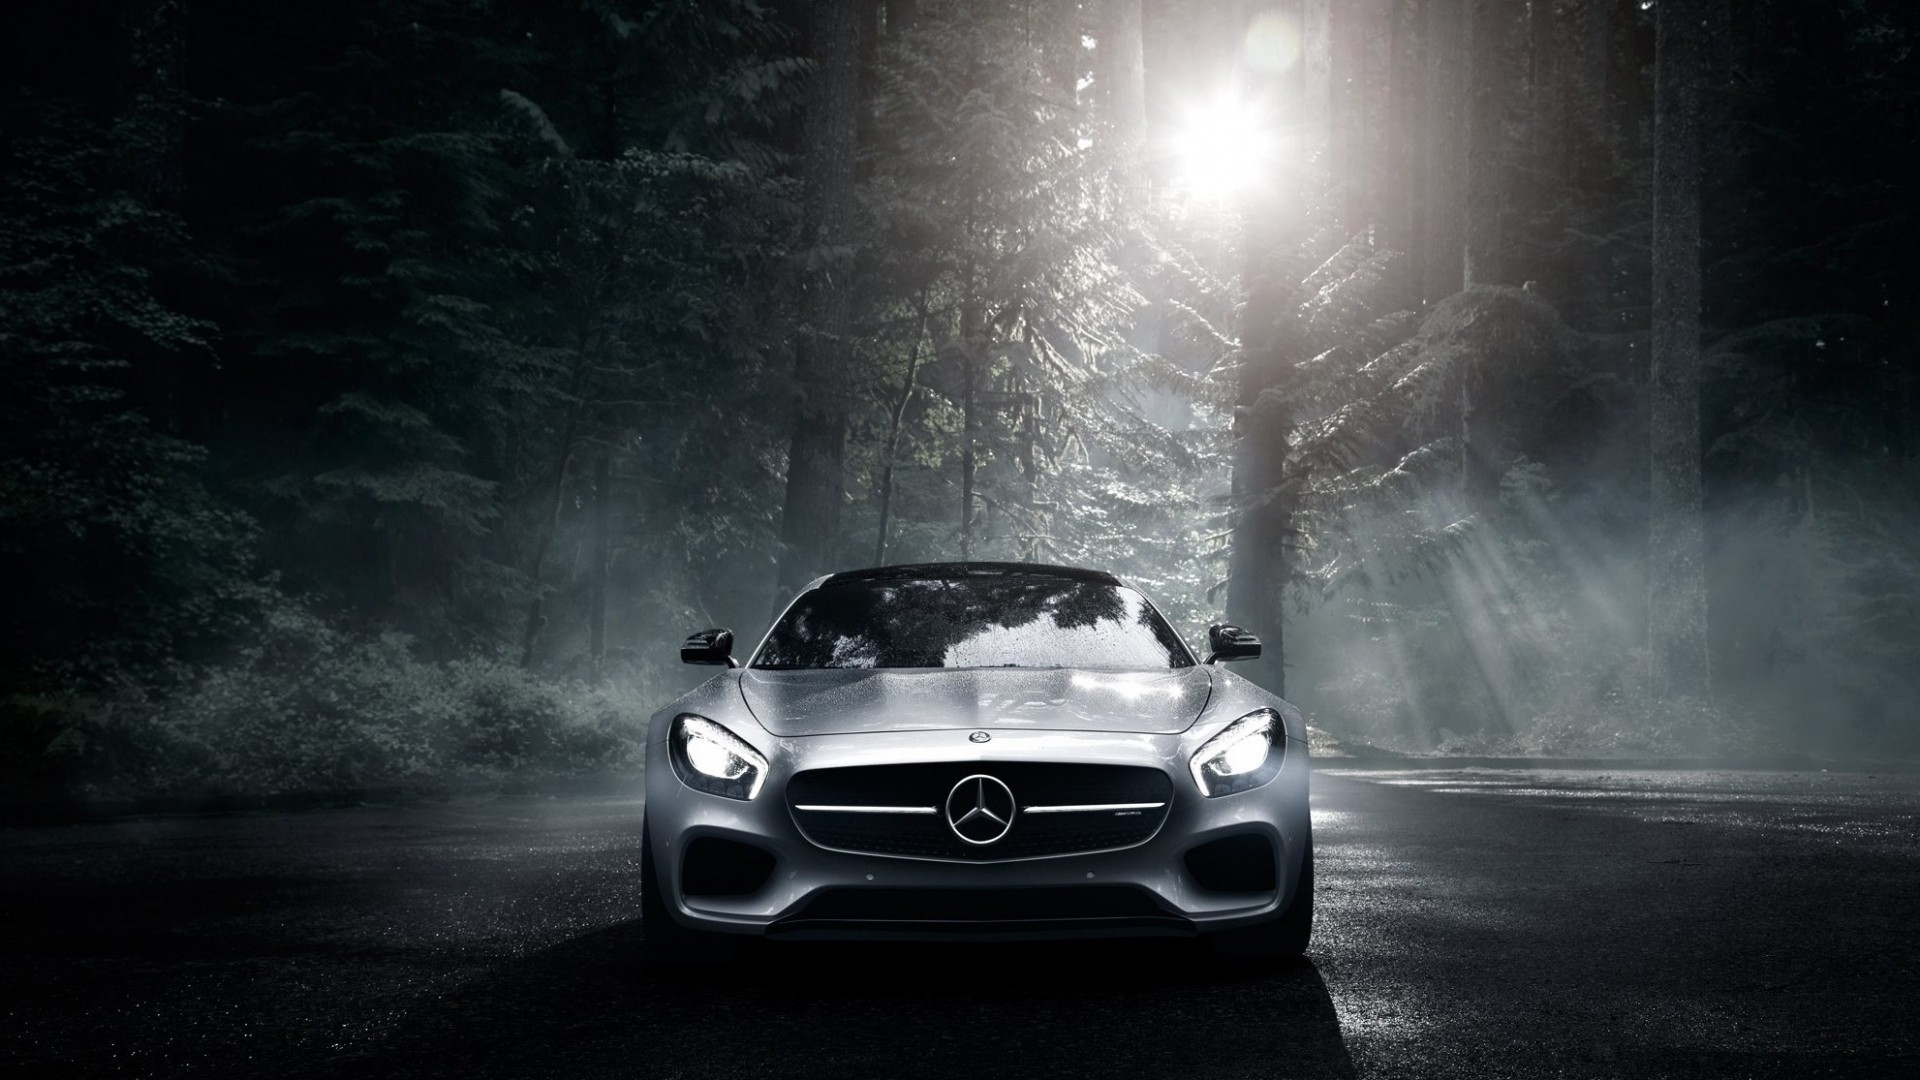 … Background Full HD 1080p. Wallpaper mercedes benz,  mercedes-amg, front view, silver, wood